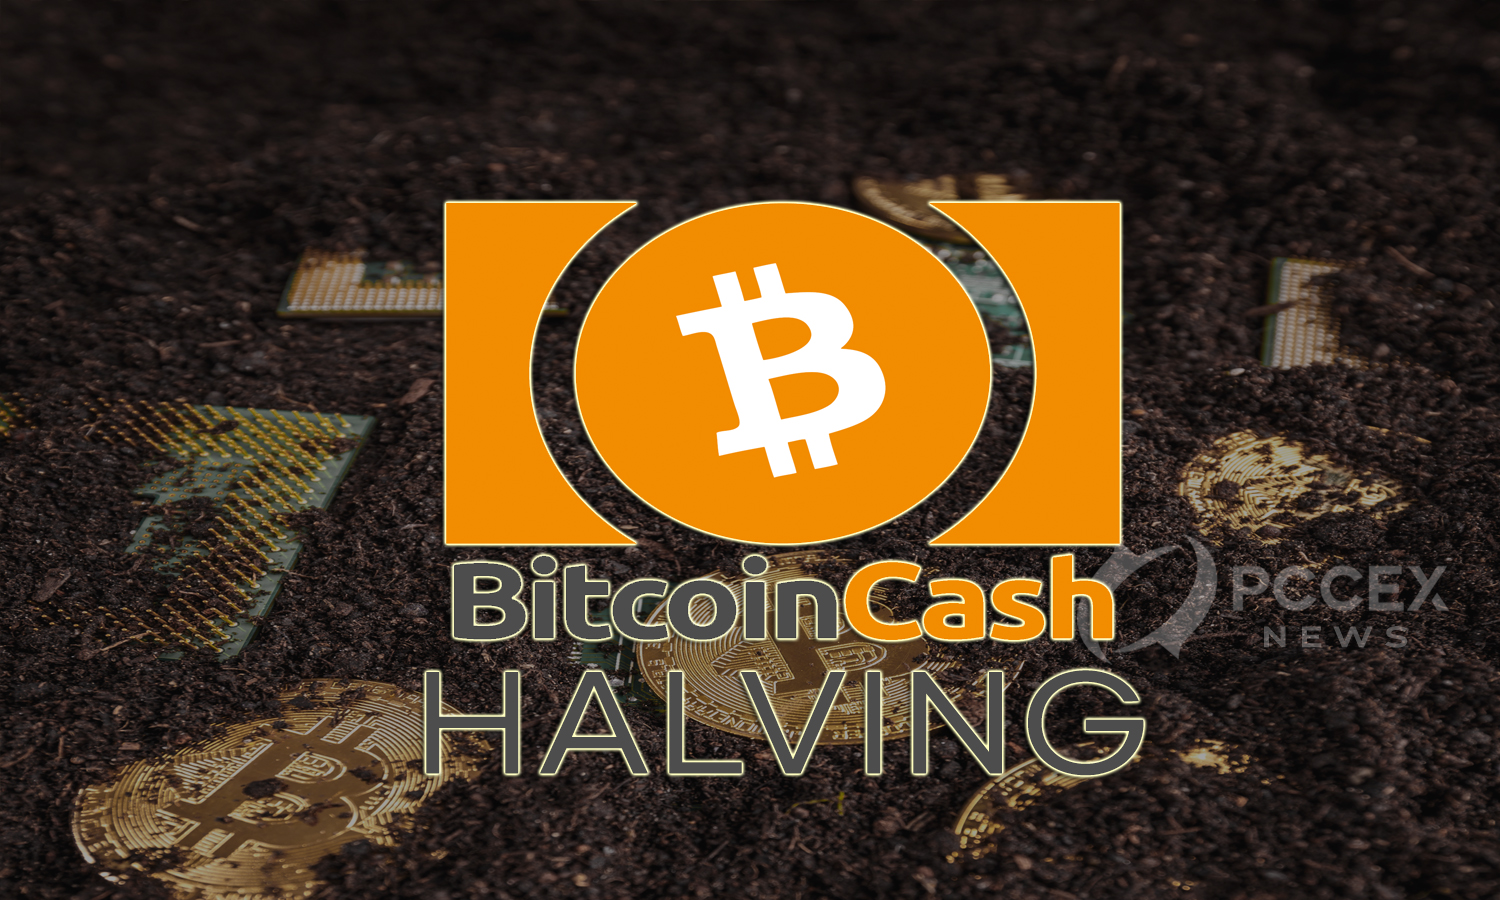 Bitcoin Cash Halving: Miners Switching to Bitcoin?